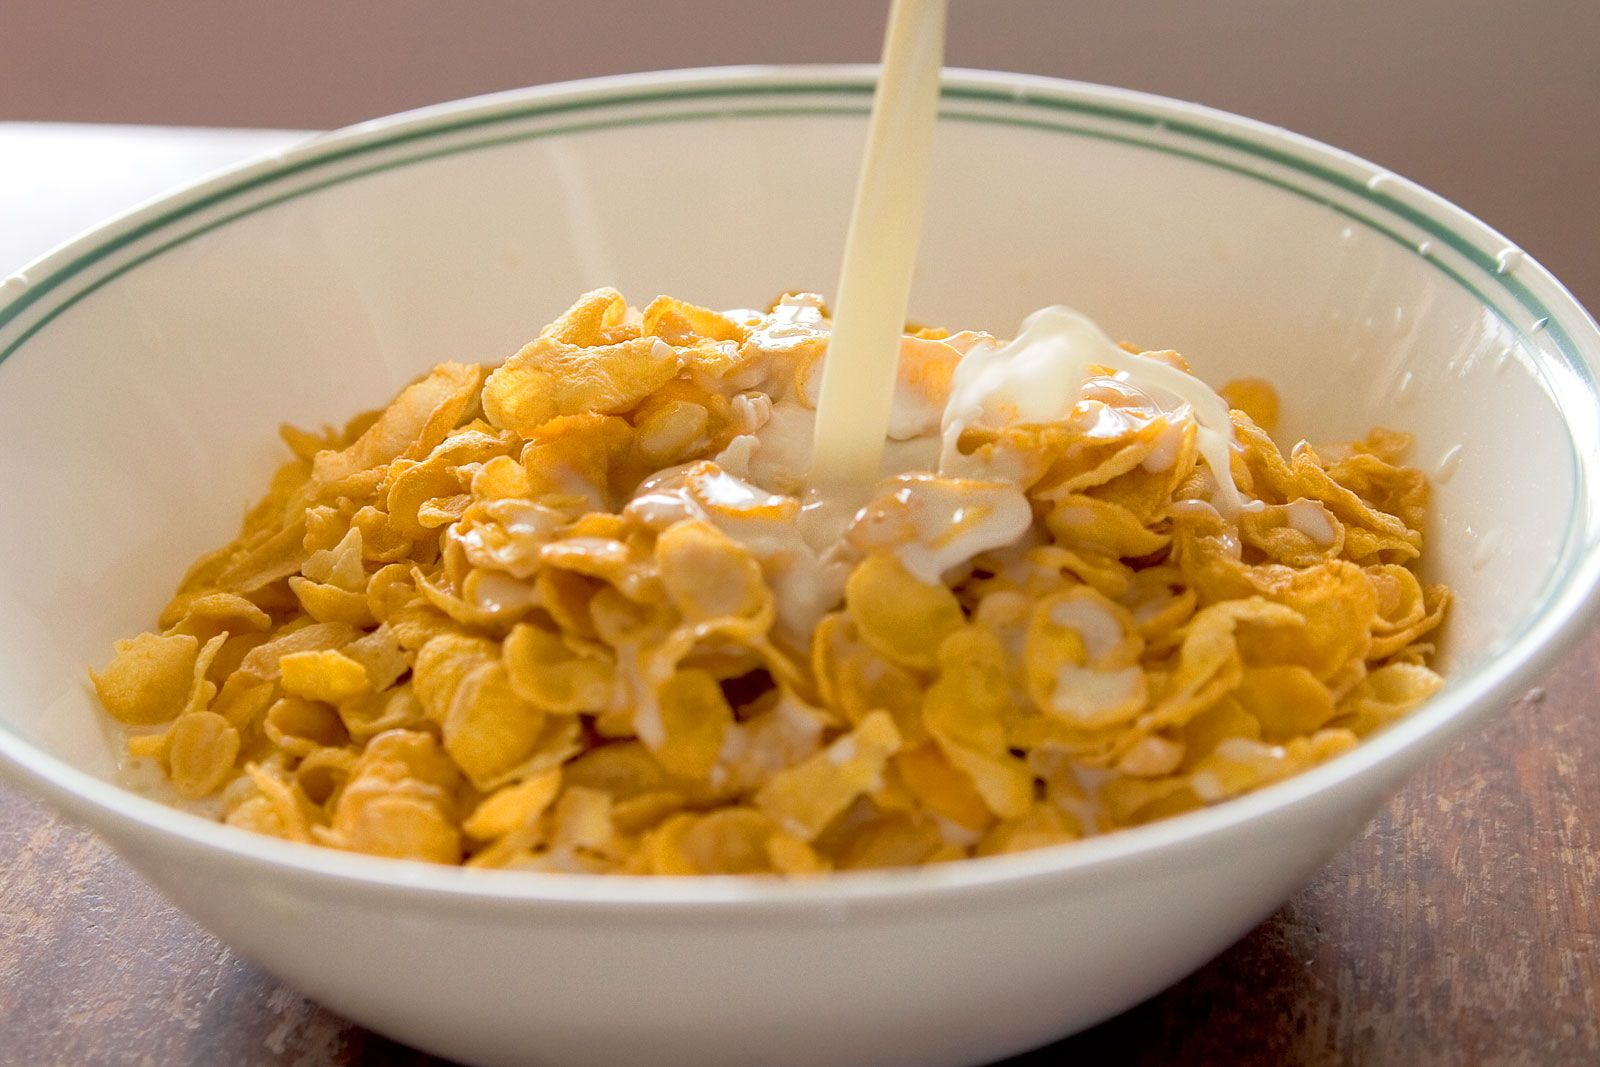 http://www.webexhibits.org/causesofcolor/images/content/melanin/Cornflakes_with_milk_pouring_inZ.jpg